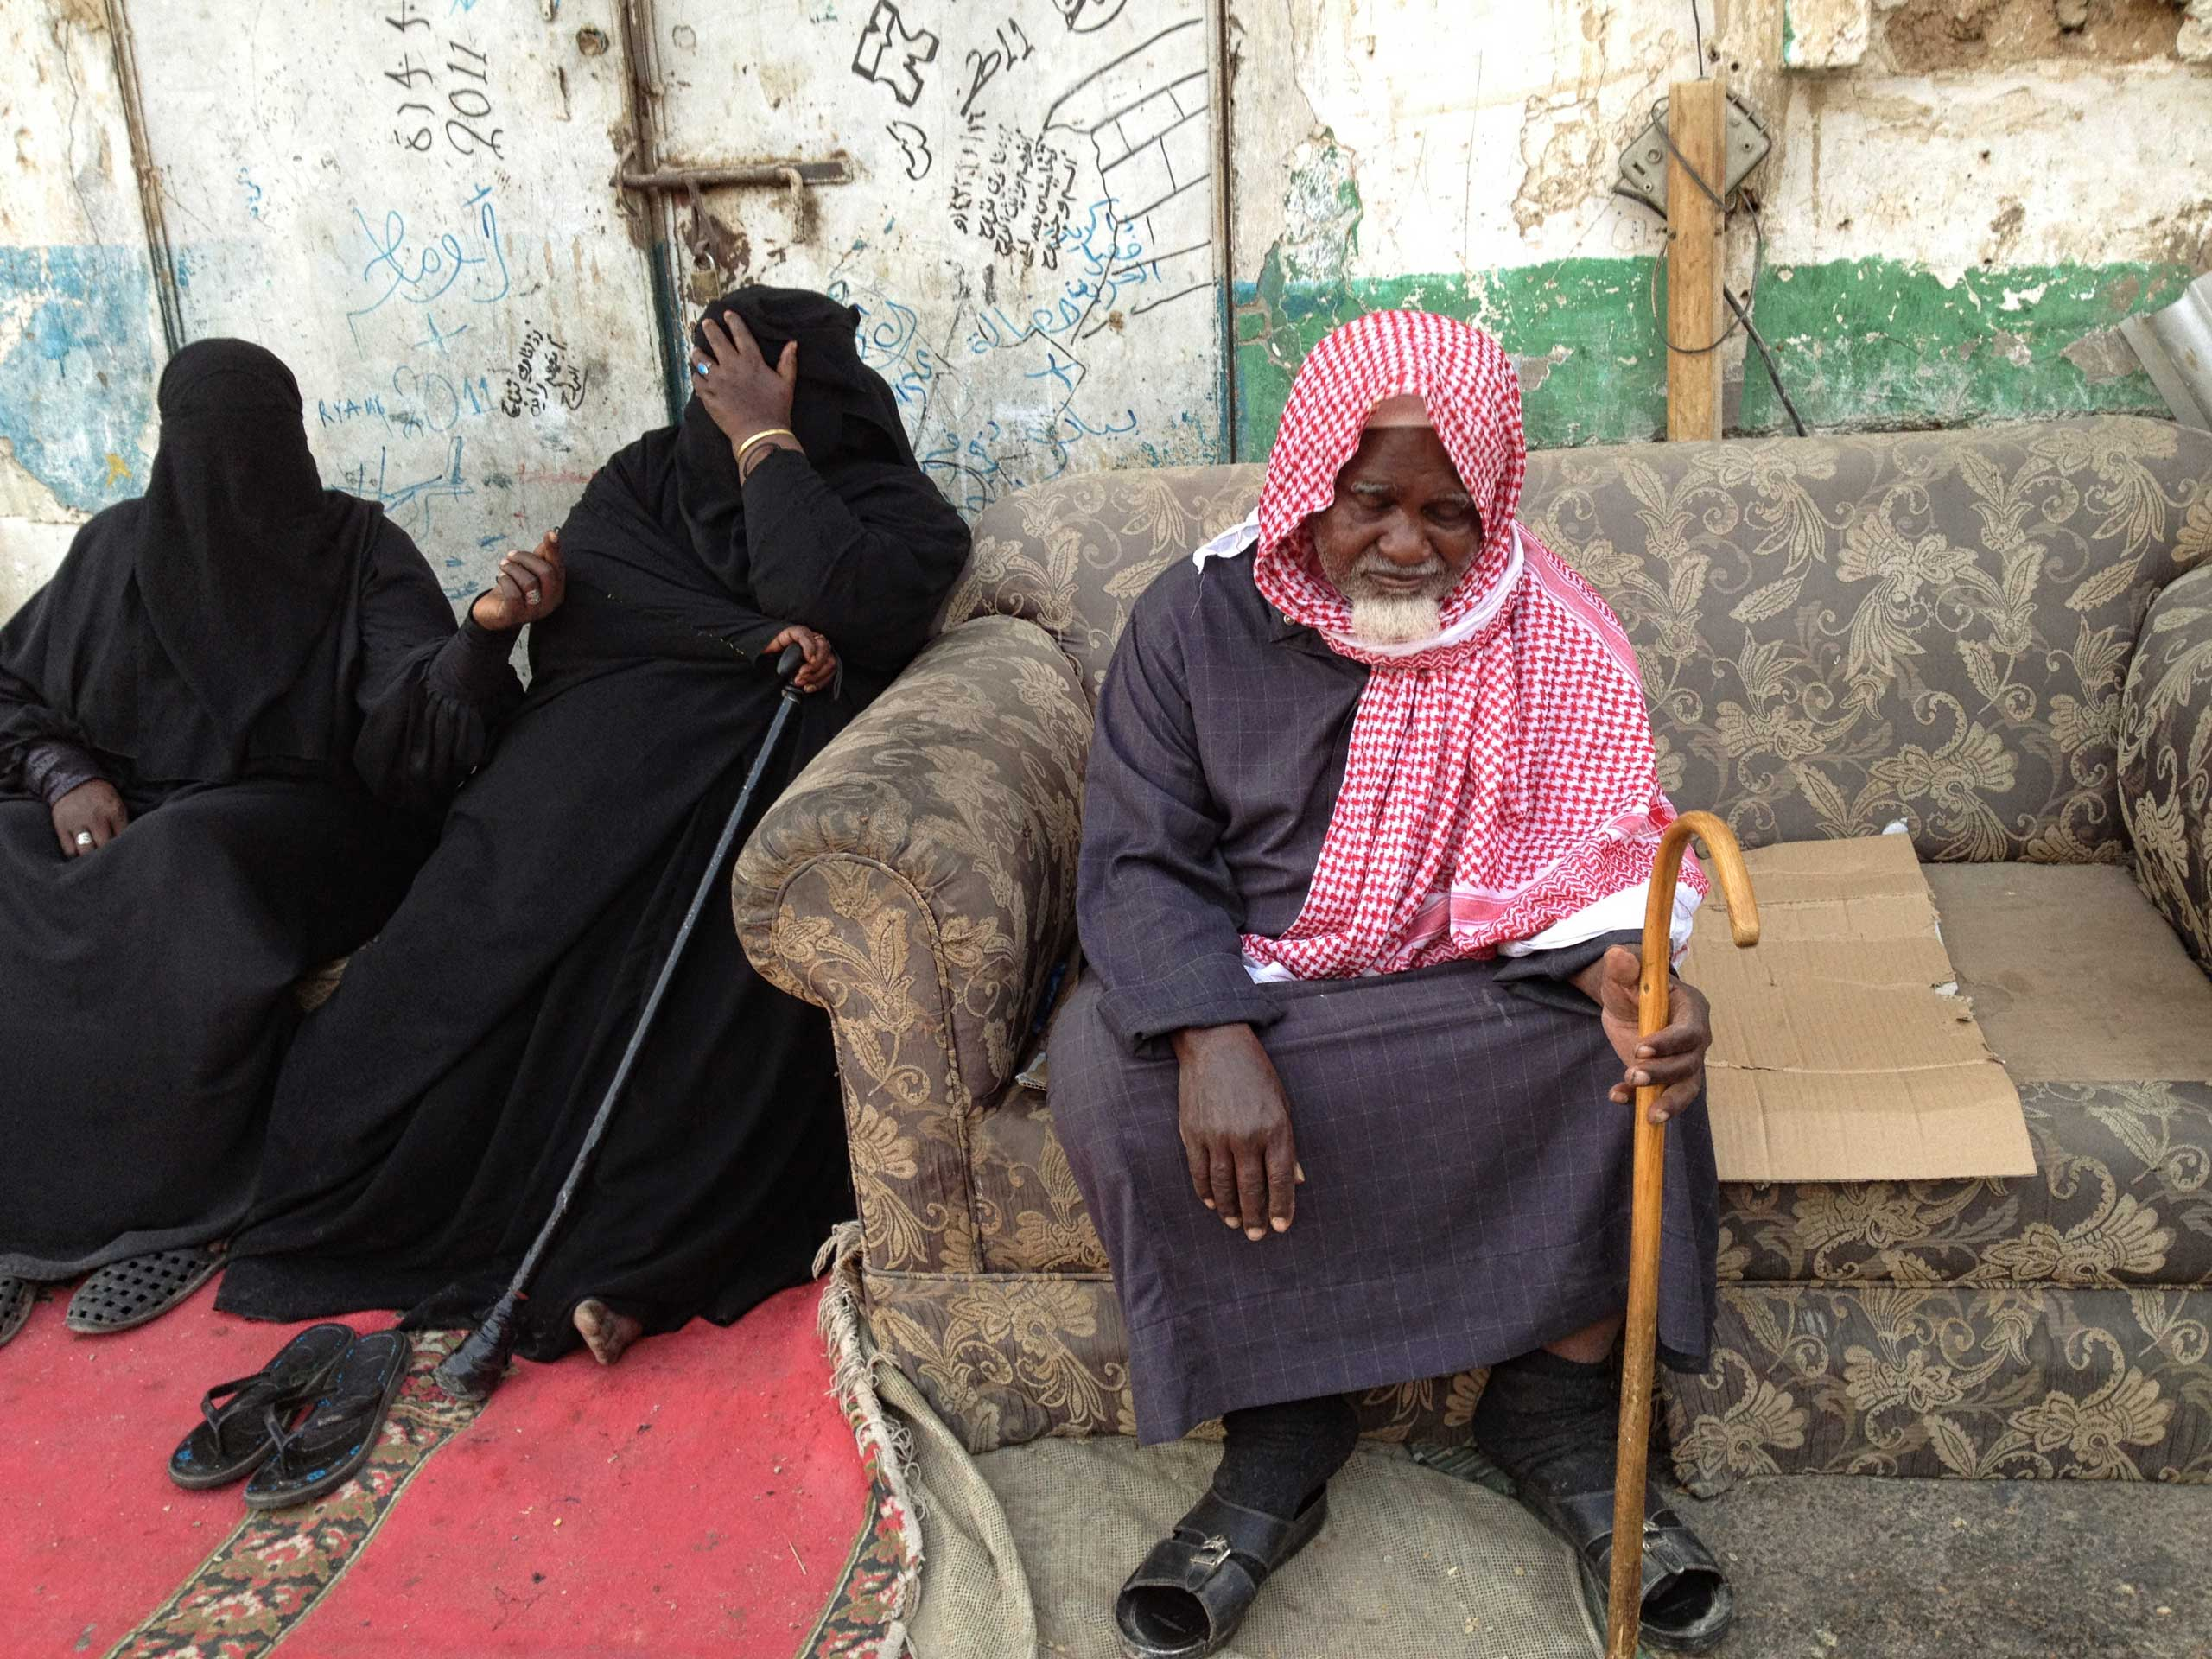 Saudis beg in a line on a street known to locals as 'The Beggars' Street,' in South Riyadh.